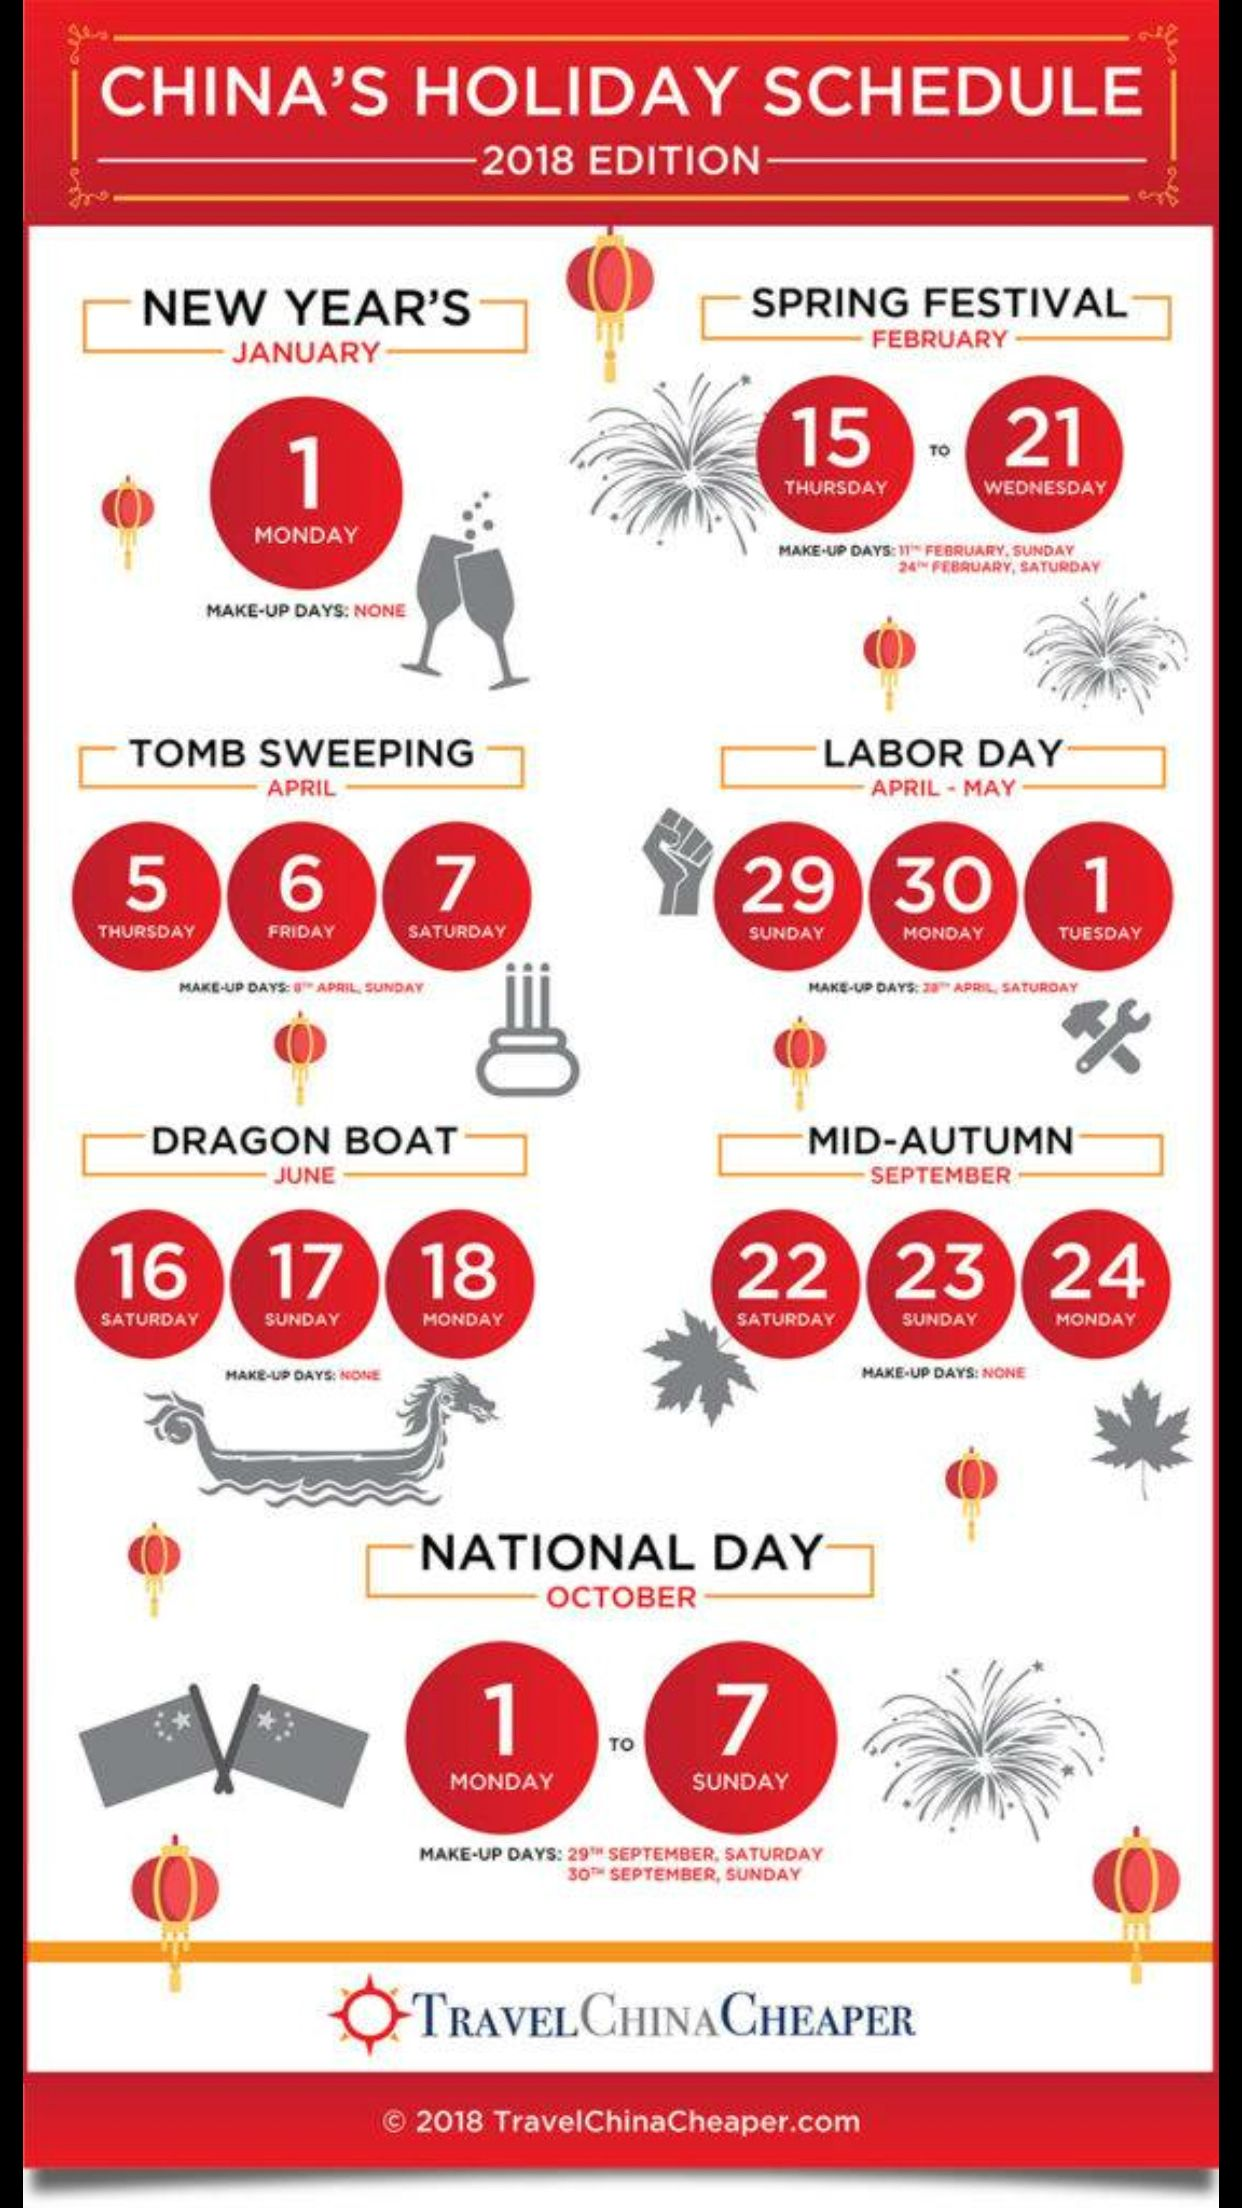 Holidays Holiday calendar, Holiday schedule, Chinese new